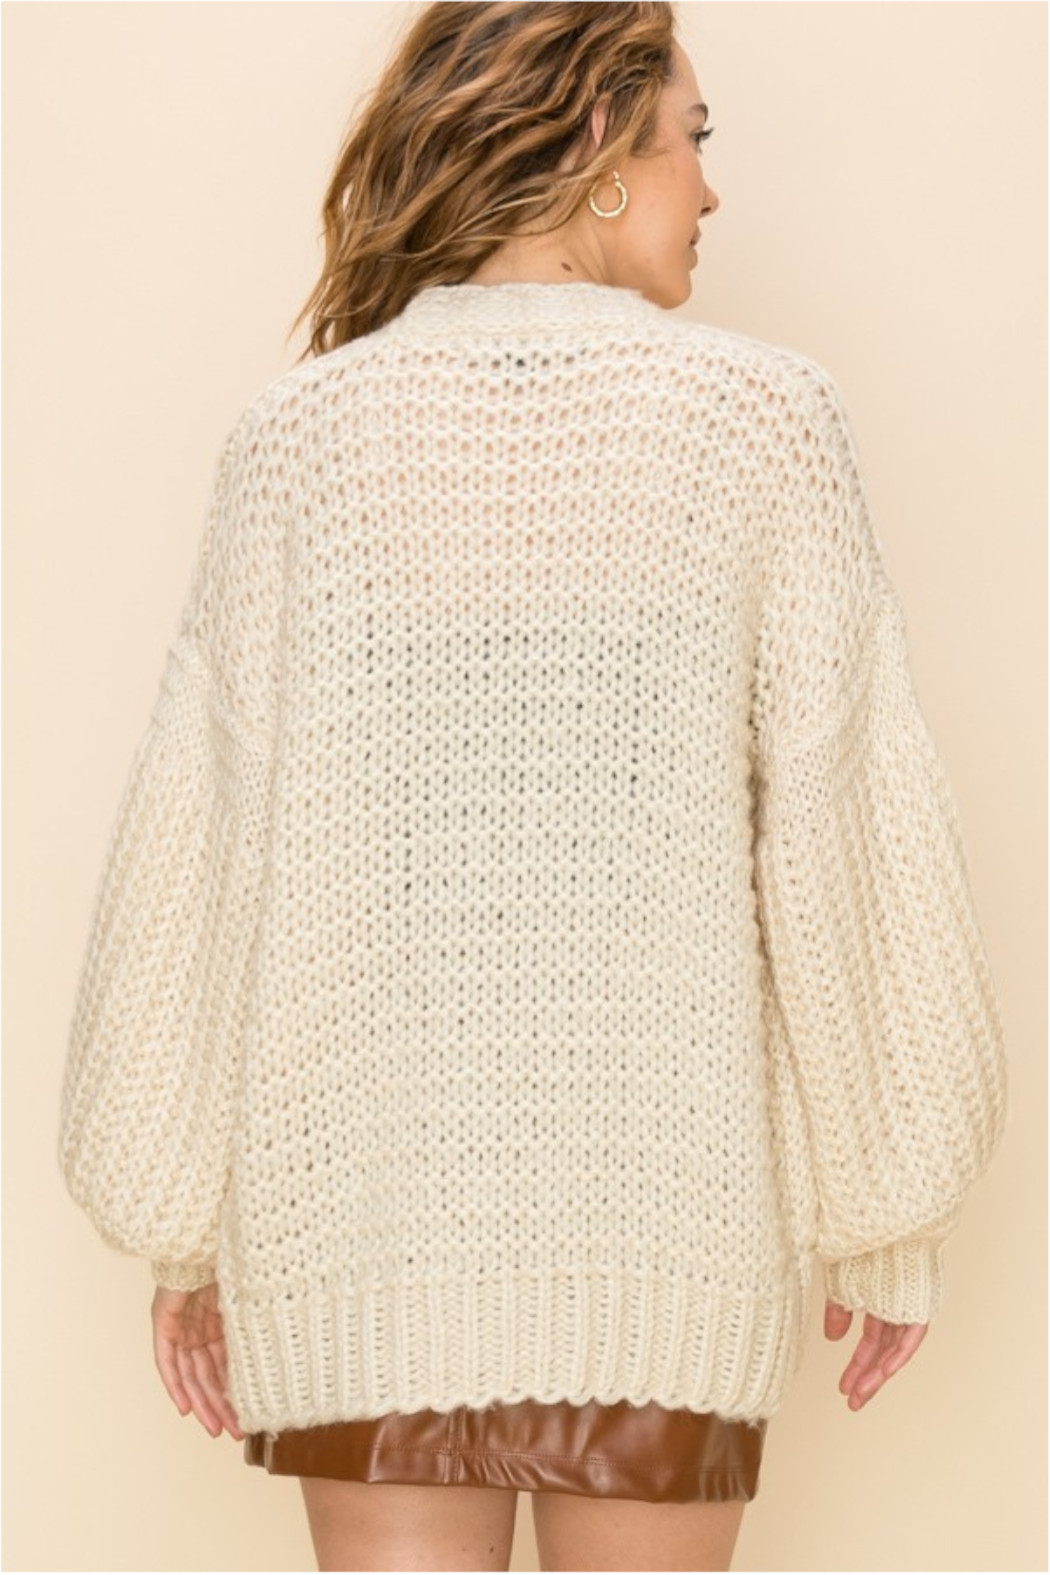 HYFVE Cream Knit Open Sweater - Side Cropped Image